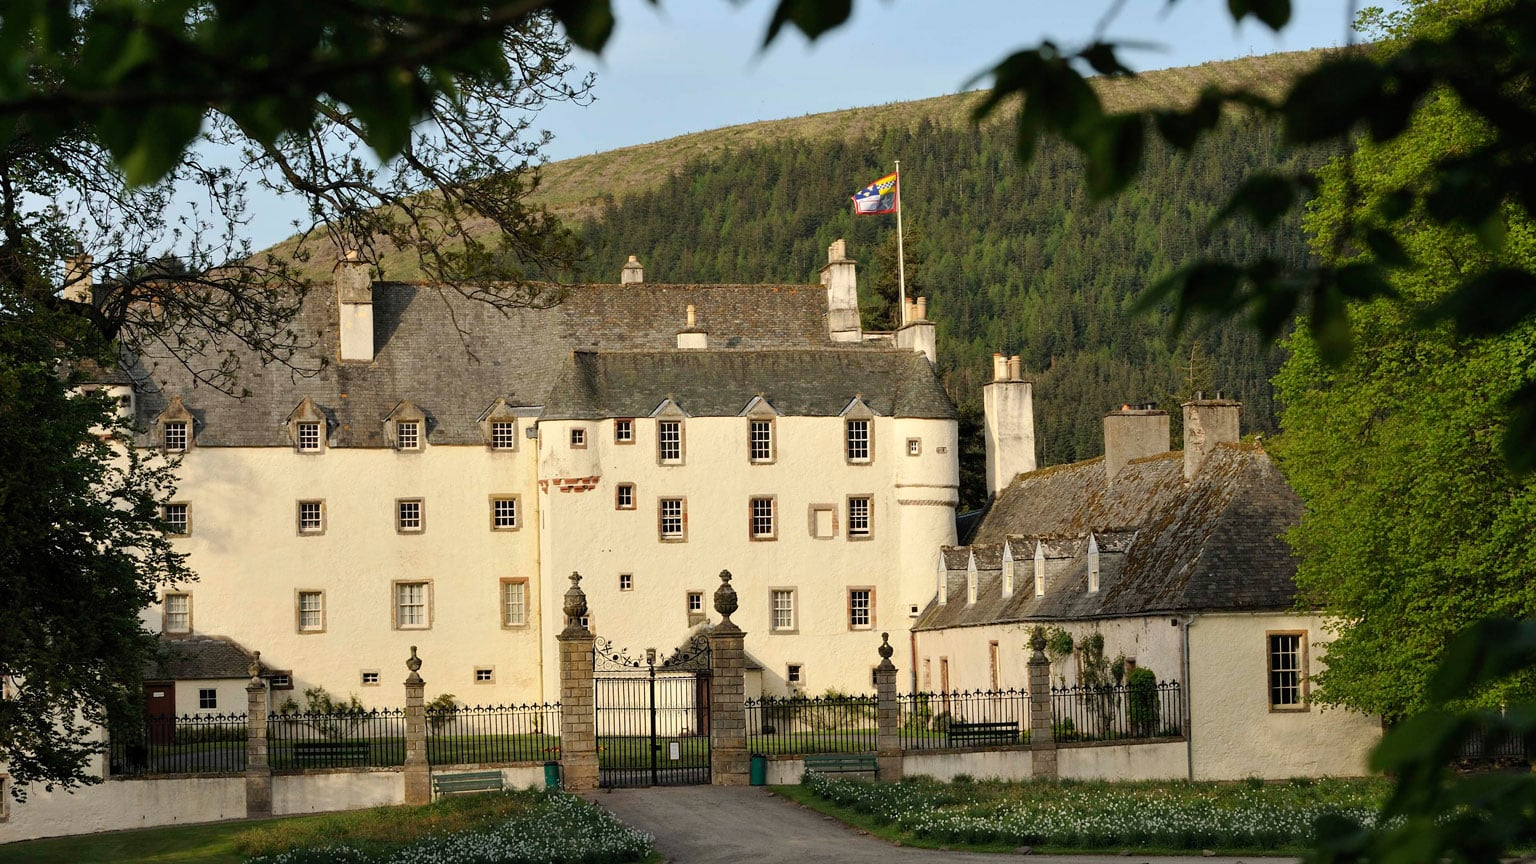 10. Traquair House, Borders - 2-for-1 entry with National Art Pass